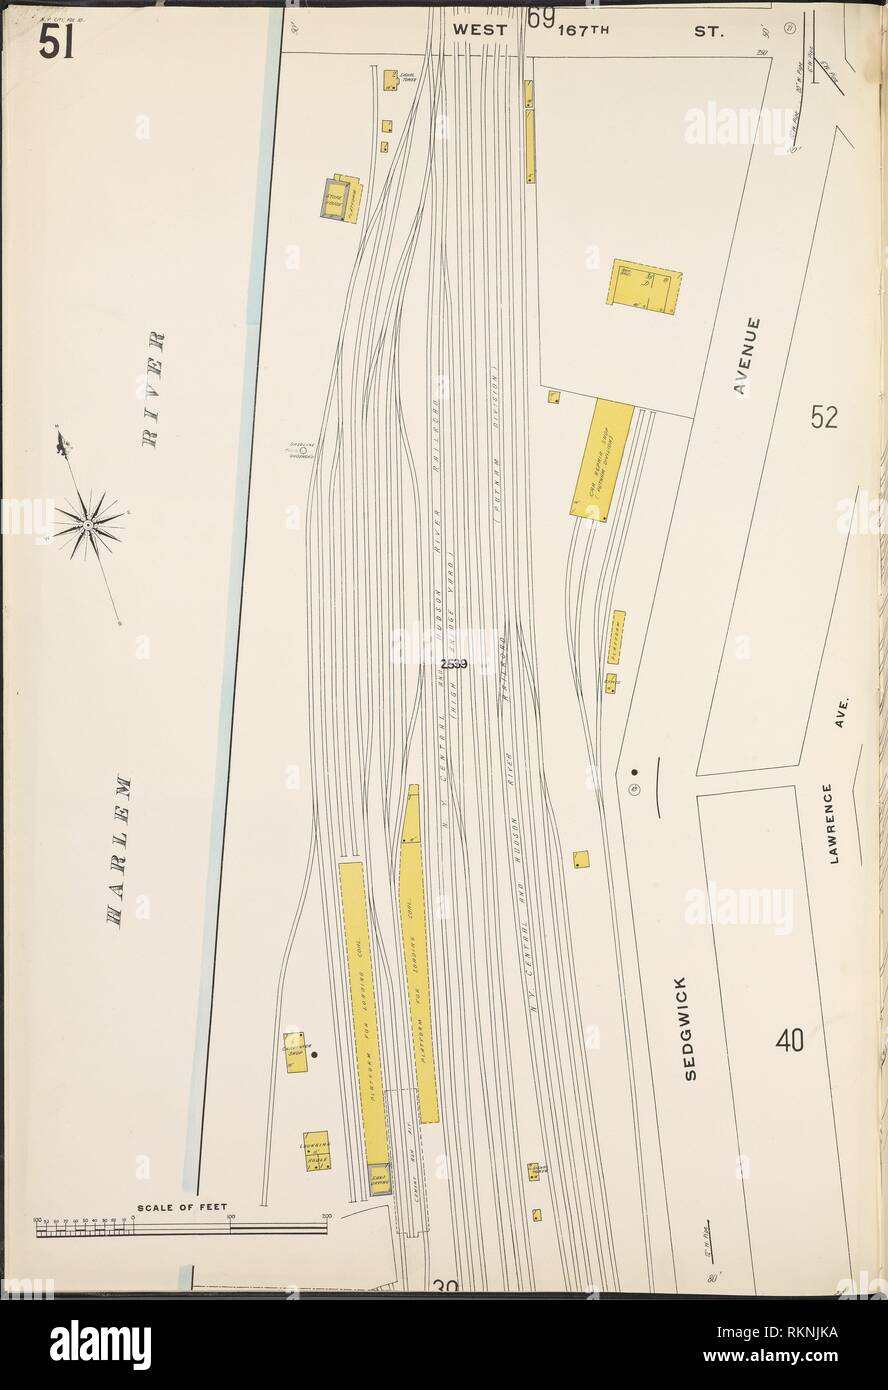 Map Of New York Harlem.Bronx V 10 Plate No 51 Map Bounded By Harlem River W 167th St